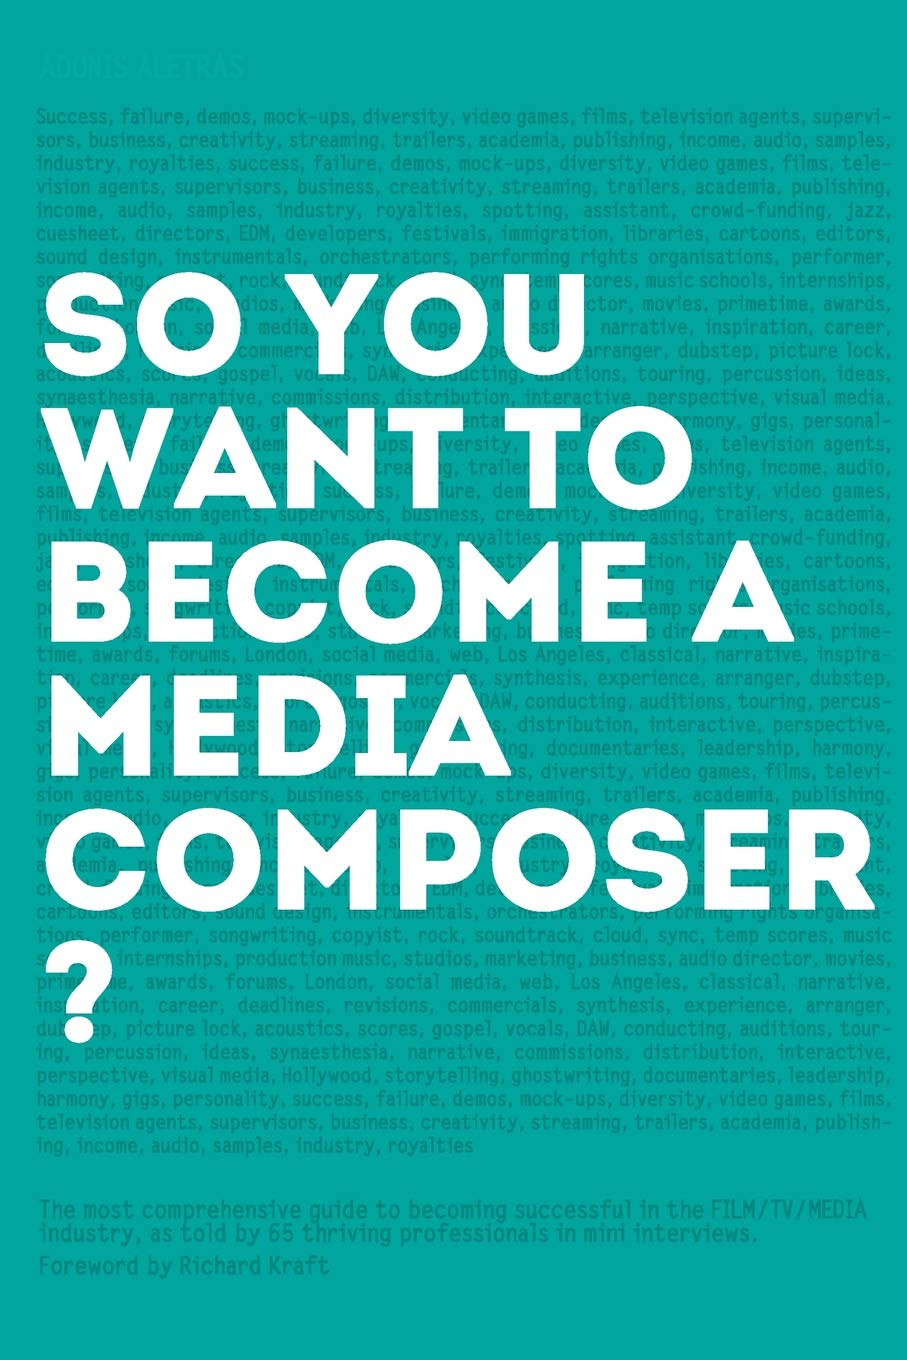 So, you want to become a media composer?: The most